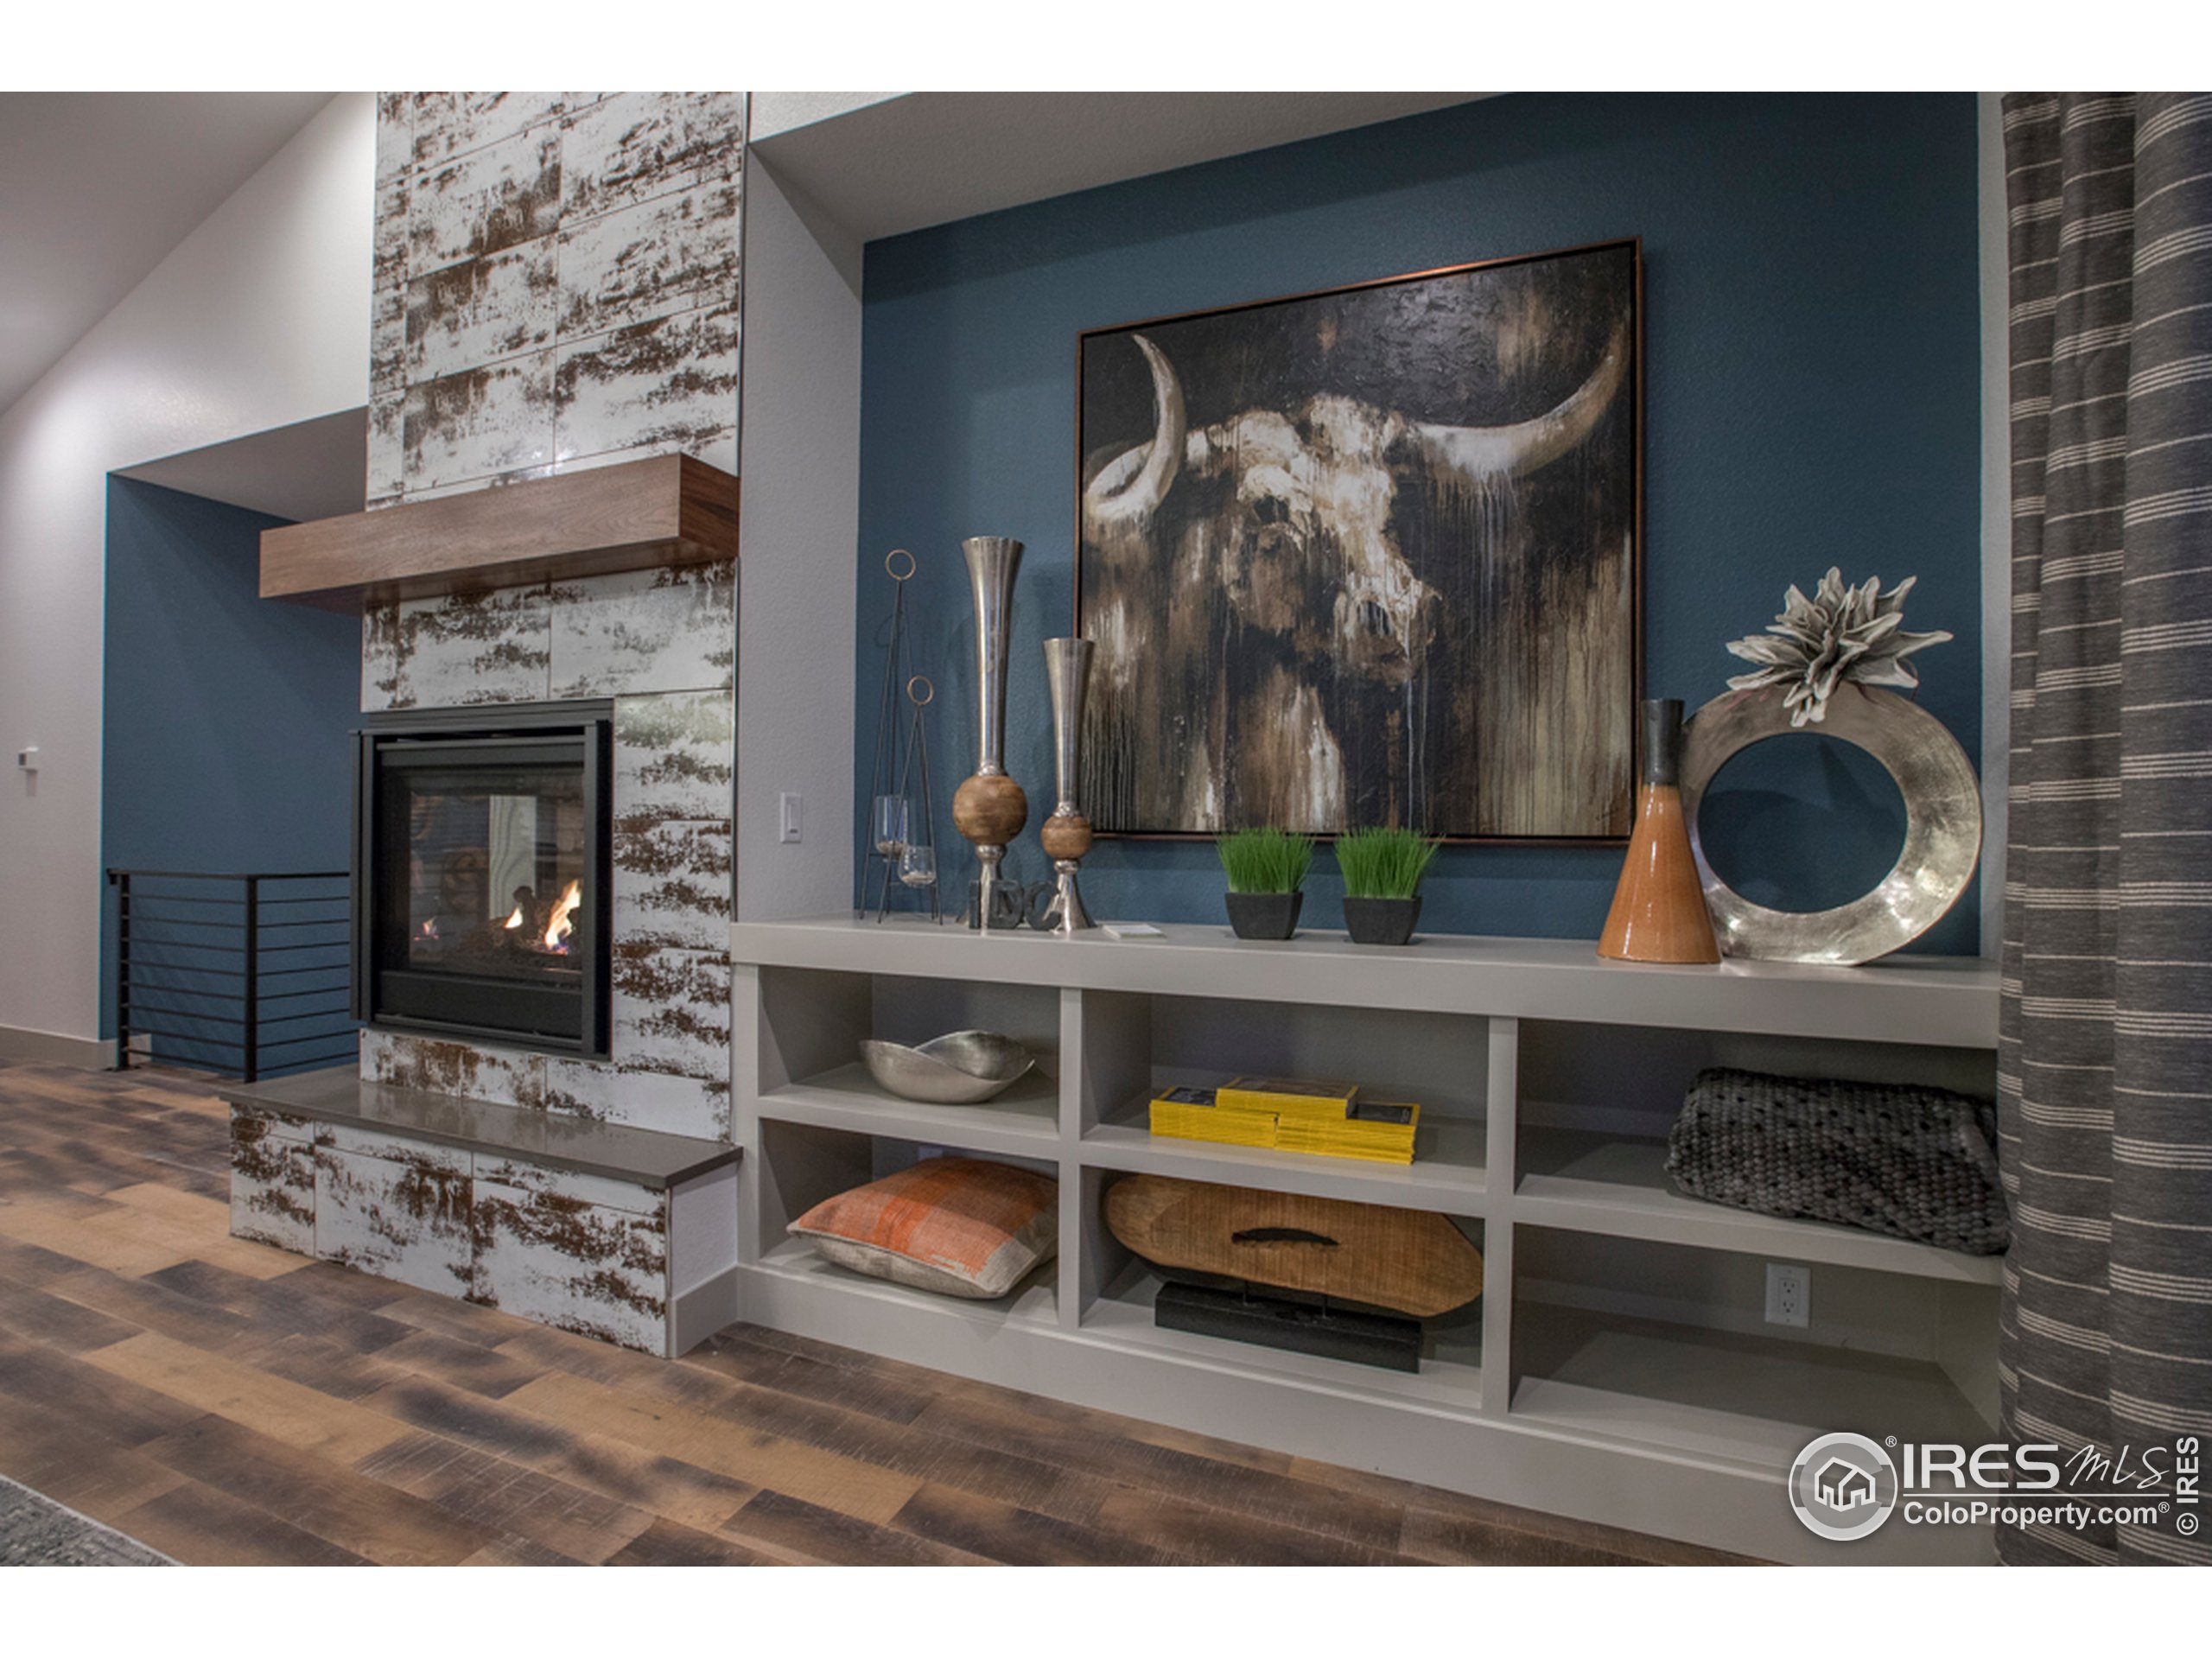 Fireplace wall in Great Room